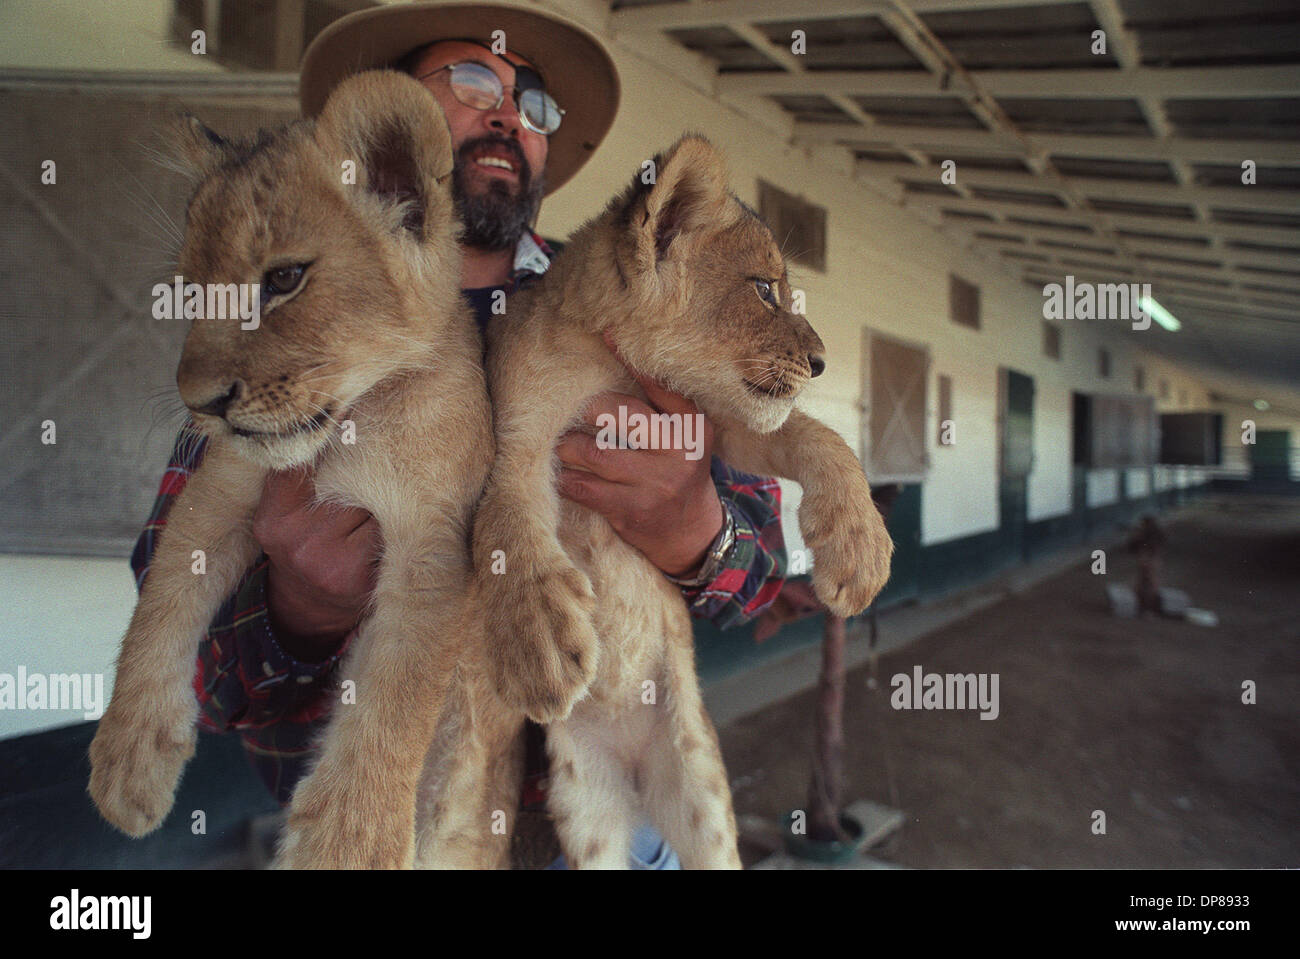 (PUBLISHED 02/01/2003, A-18): Dr. Alejandro Campos, with 10-week-old lion cubs at the nursery where he and his staff are caring for babies and sick animals. Tour groups come through constantly to visit the exotic animals he keeps there at the Aguas Calientes race track. Peggy Peattie photo - Stock Image